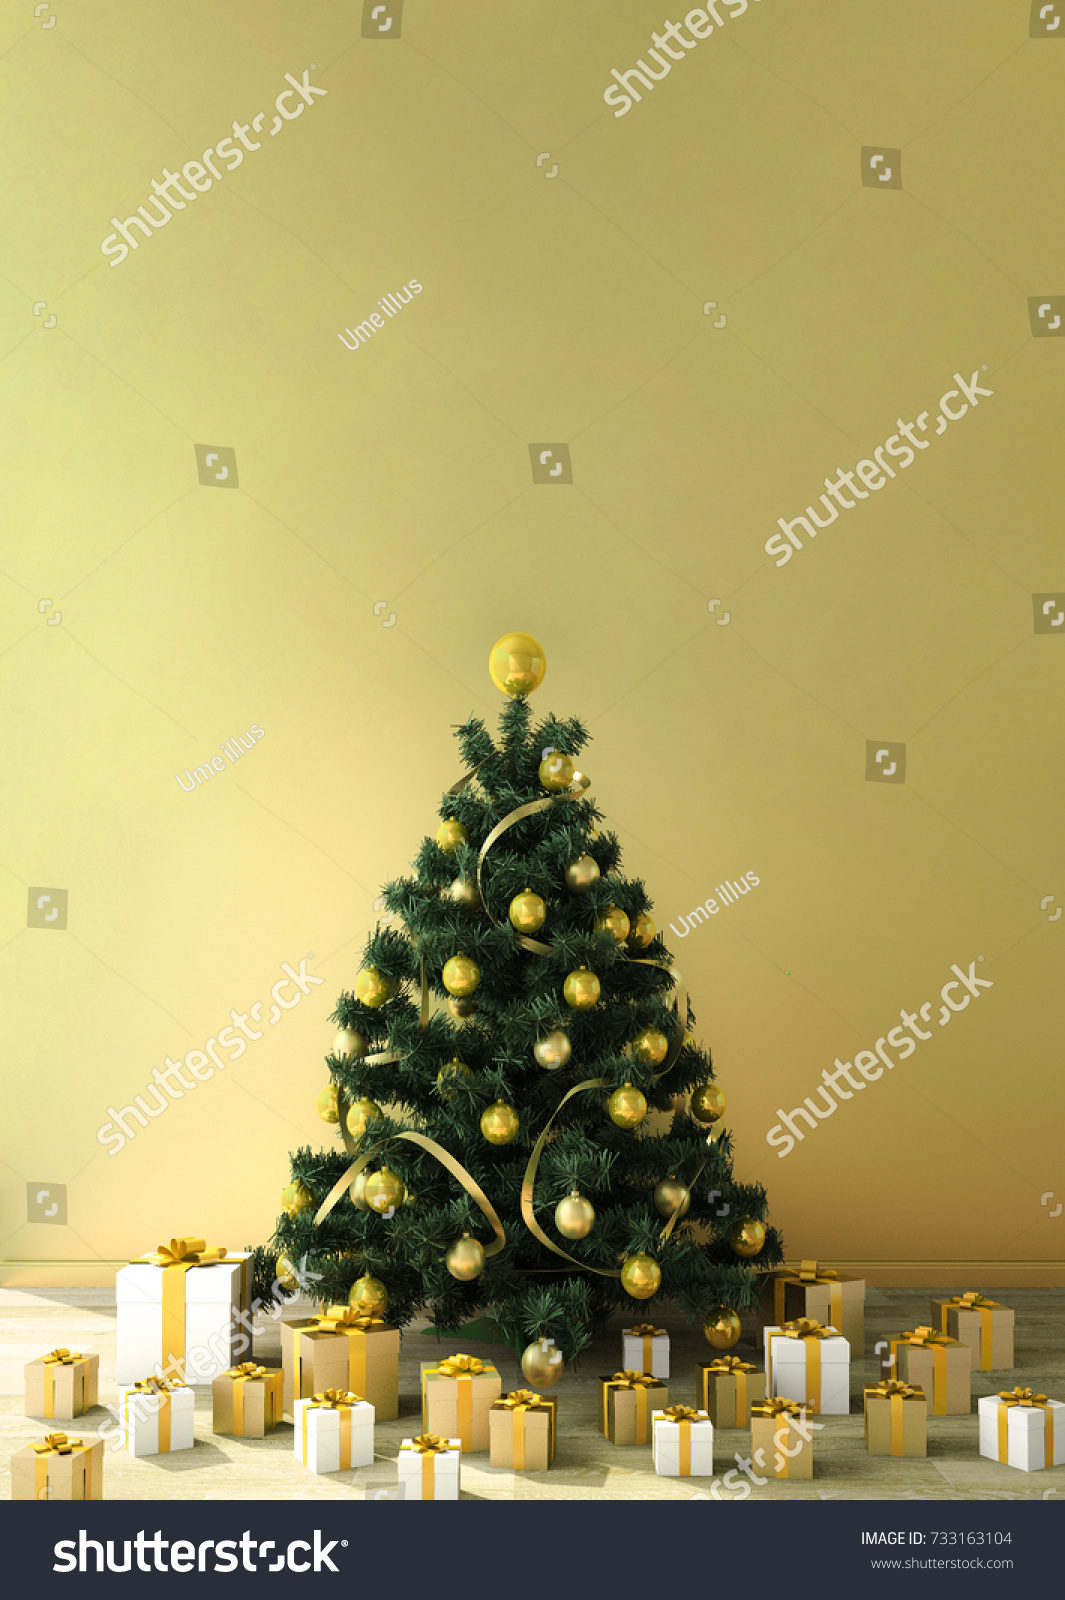 Work Space Copy Space Christmas Theme Stock Illustration 733163104 ...